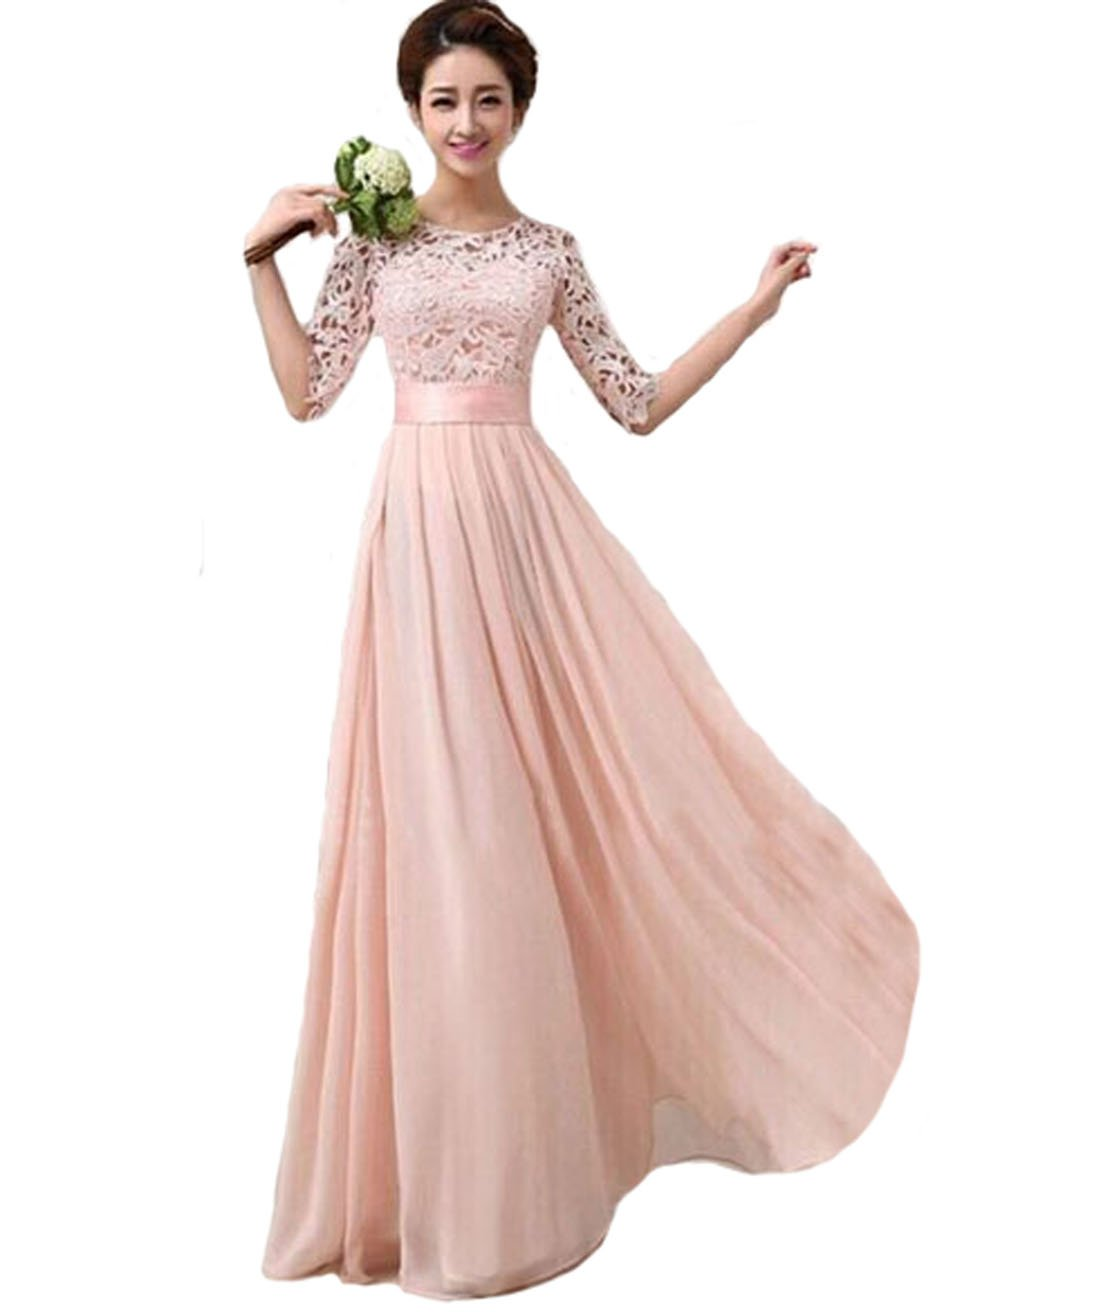 Vakind® Women Lace Chiffon Prom Ball Party Dress Bridesmaid Formal Evening Gown (M=UK10-UK12, Pink): Amazon.co.uk: Toys & Games